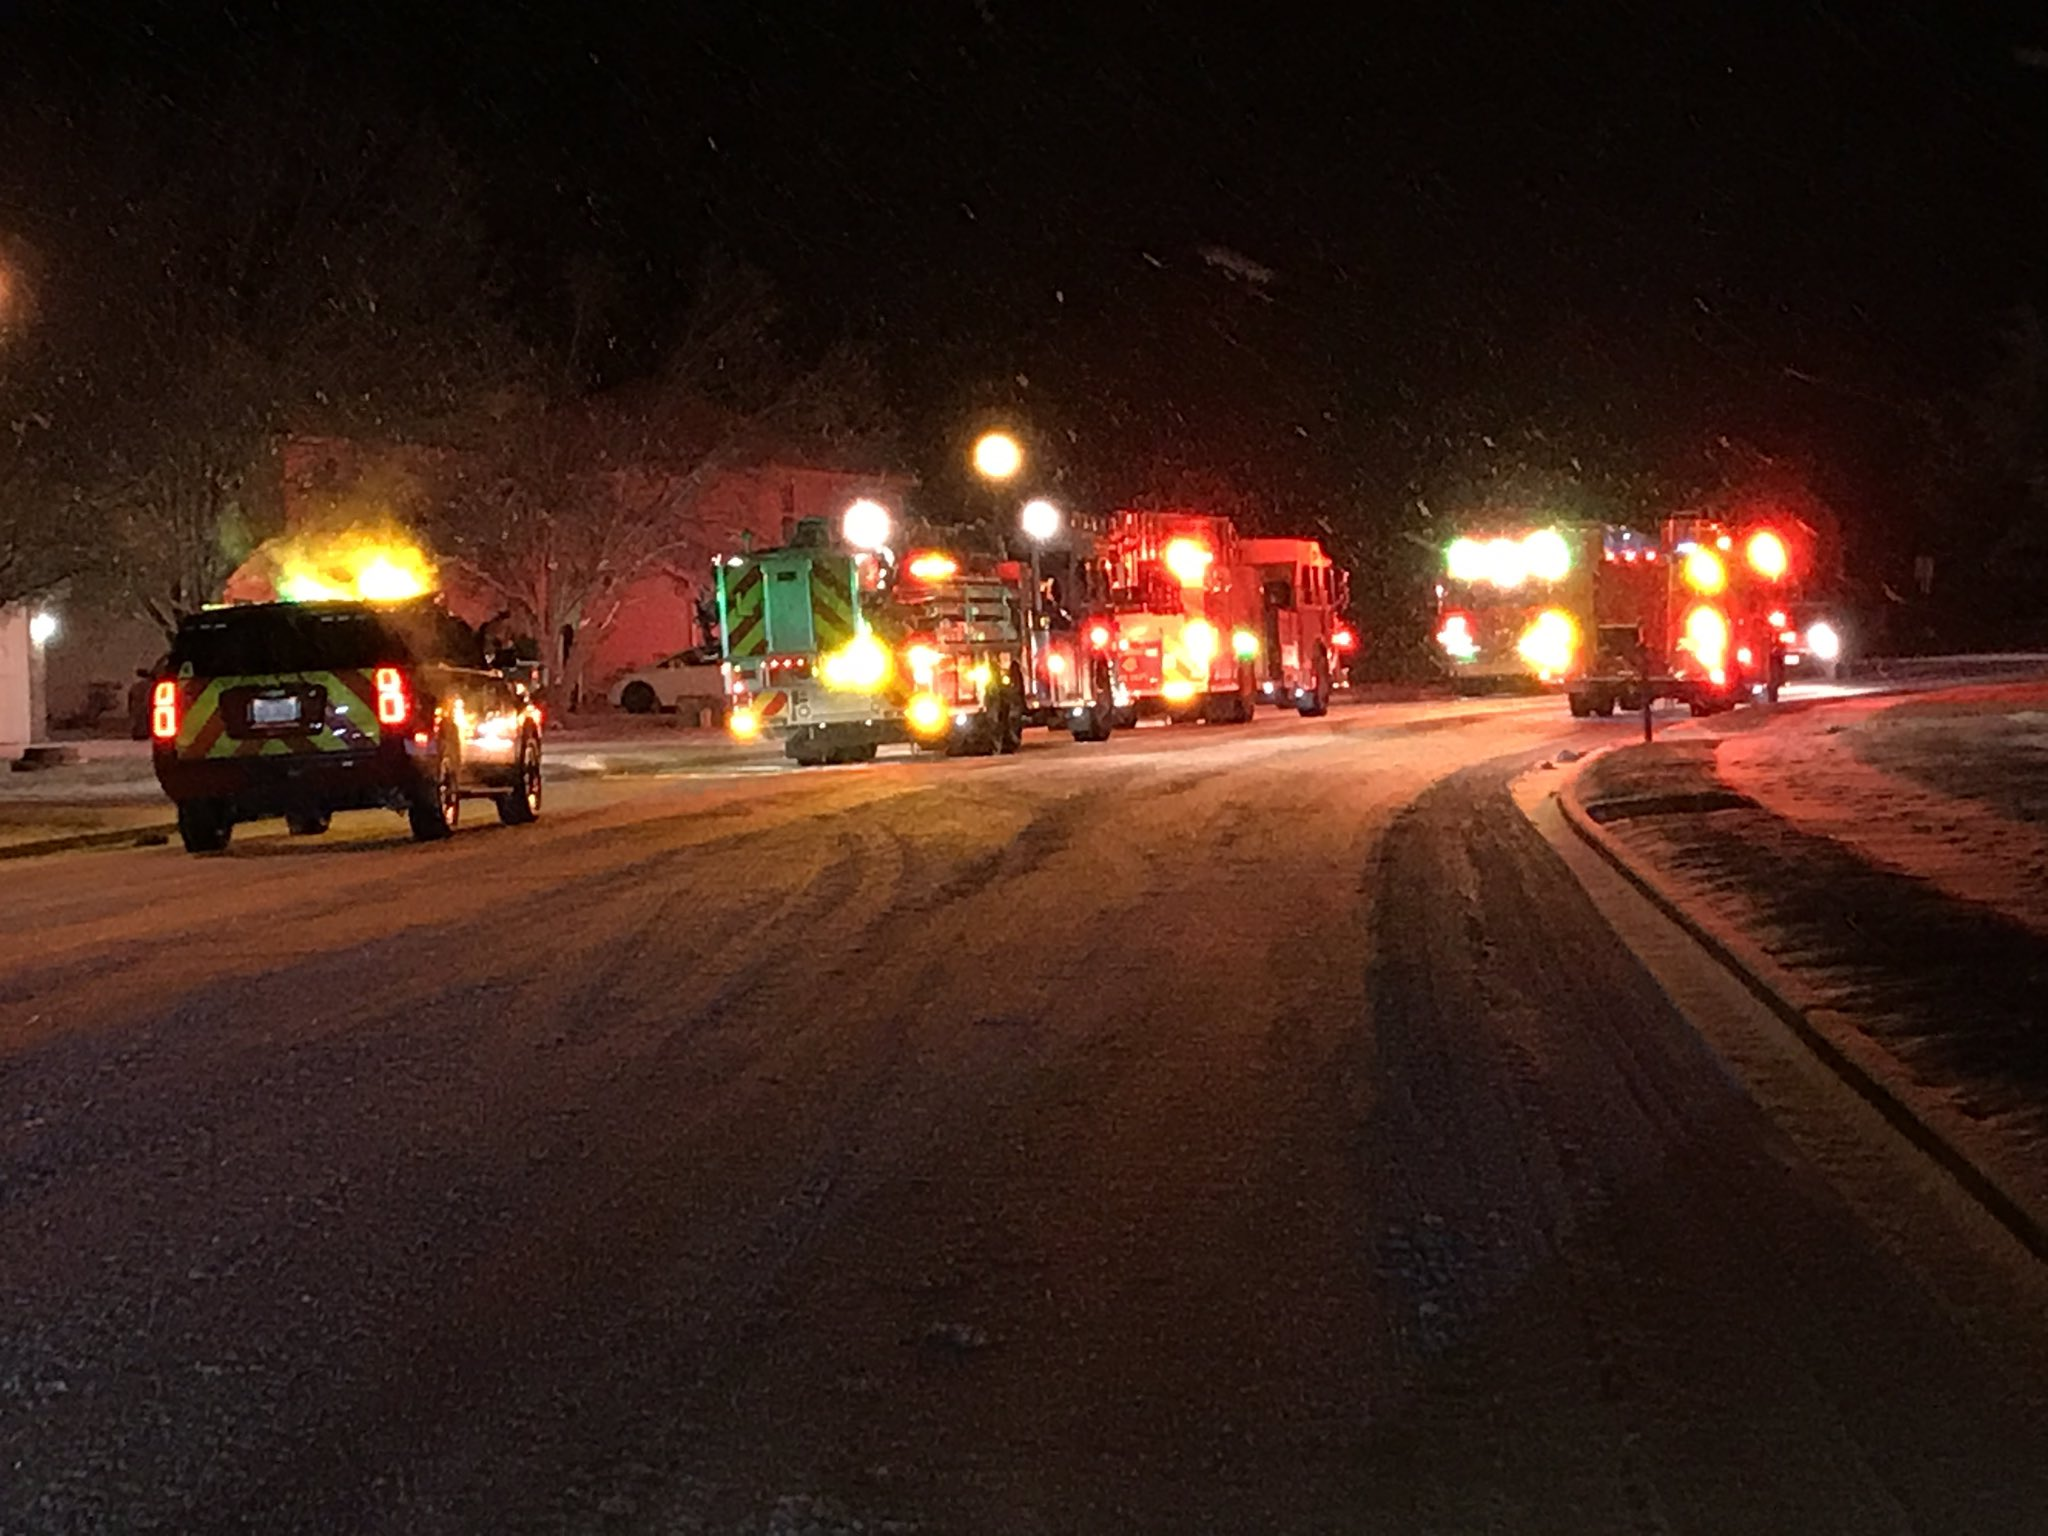 Columbia firefighters were called to investigate smoke in a home on Hanover Boulevard.